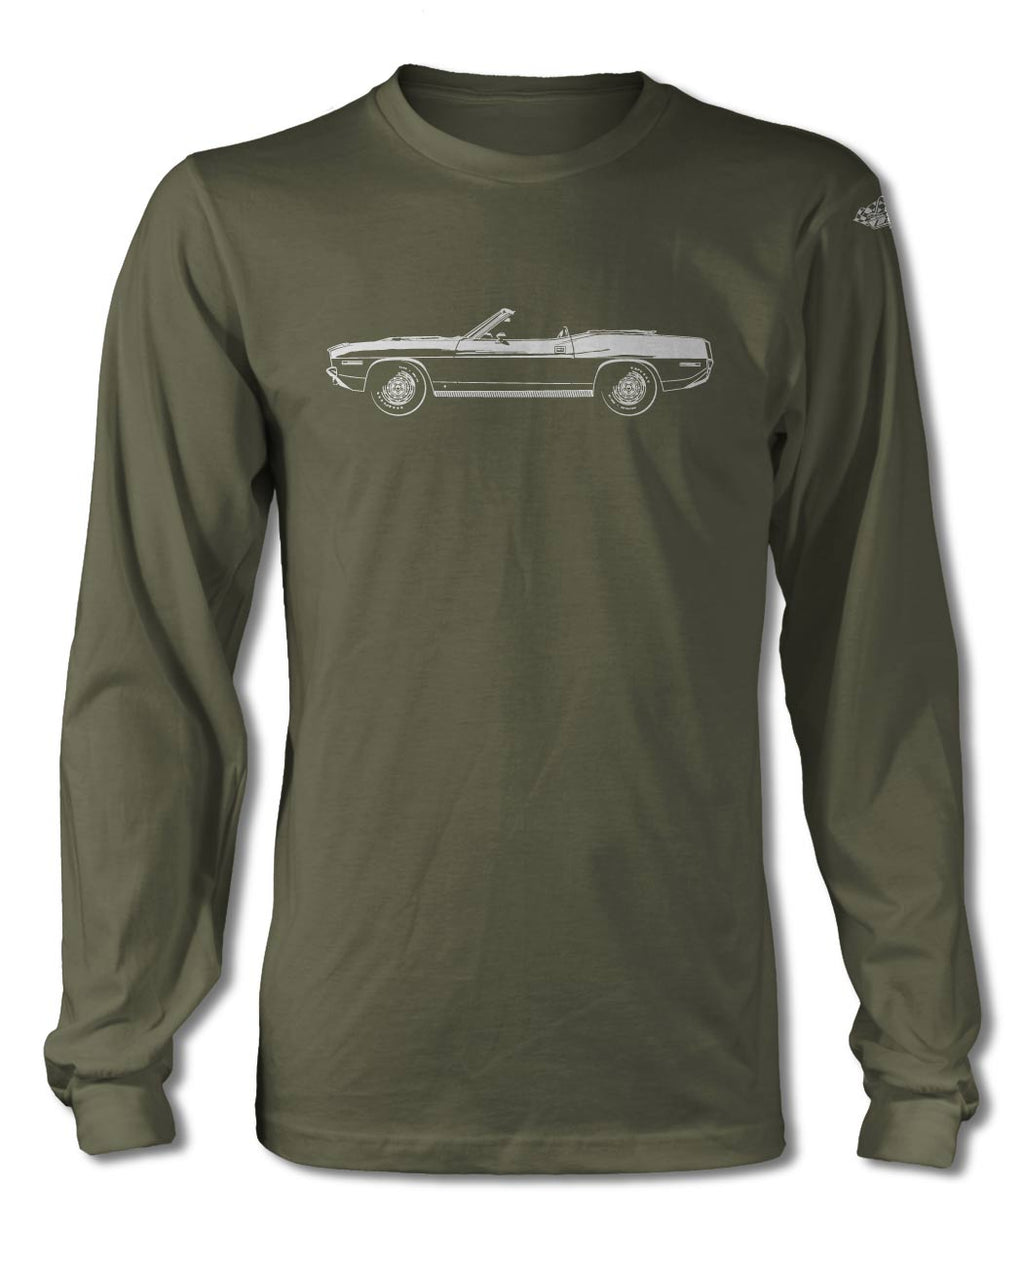 1970 Plymouth Barracuda 'Cuda Convertible T-Shirt - Long Sleeves - Side View